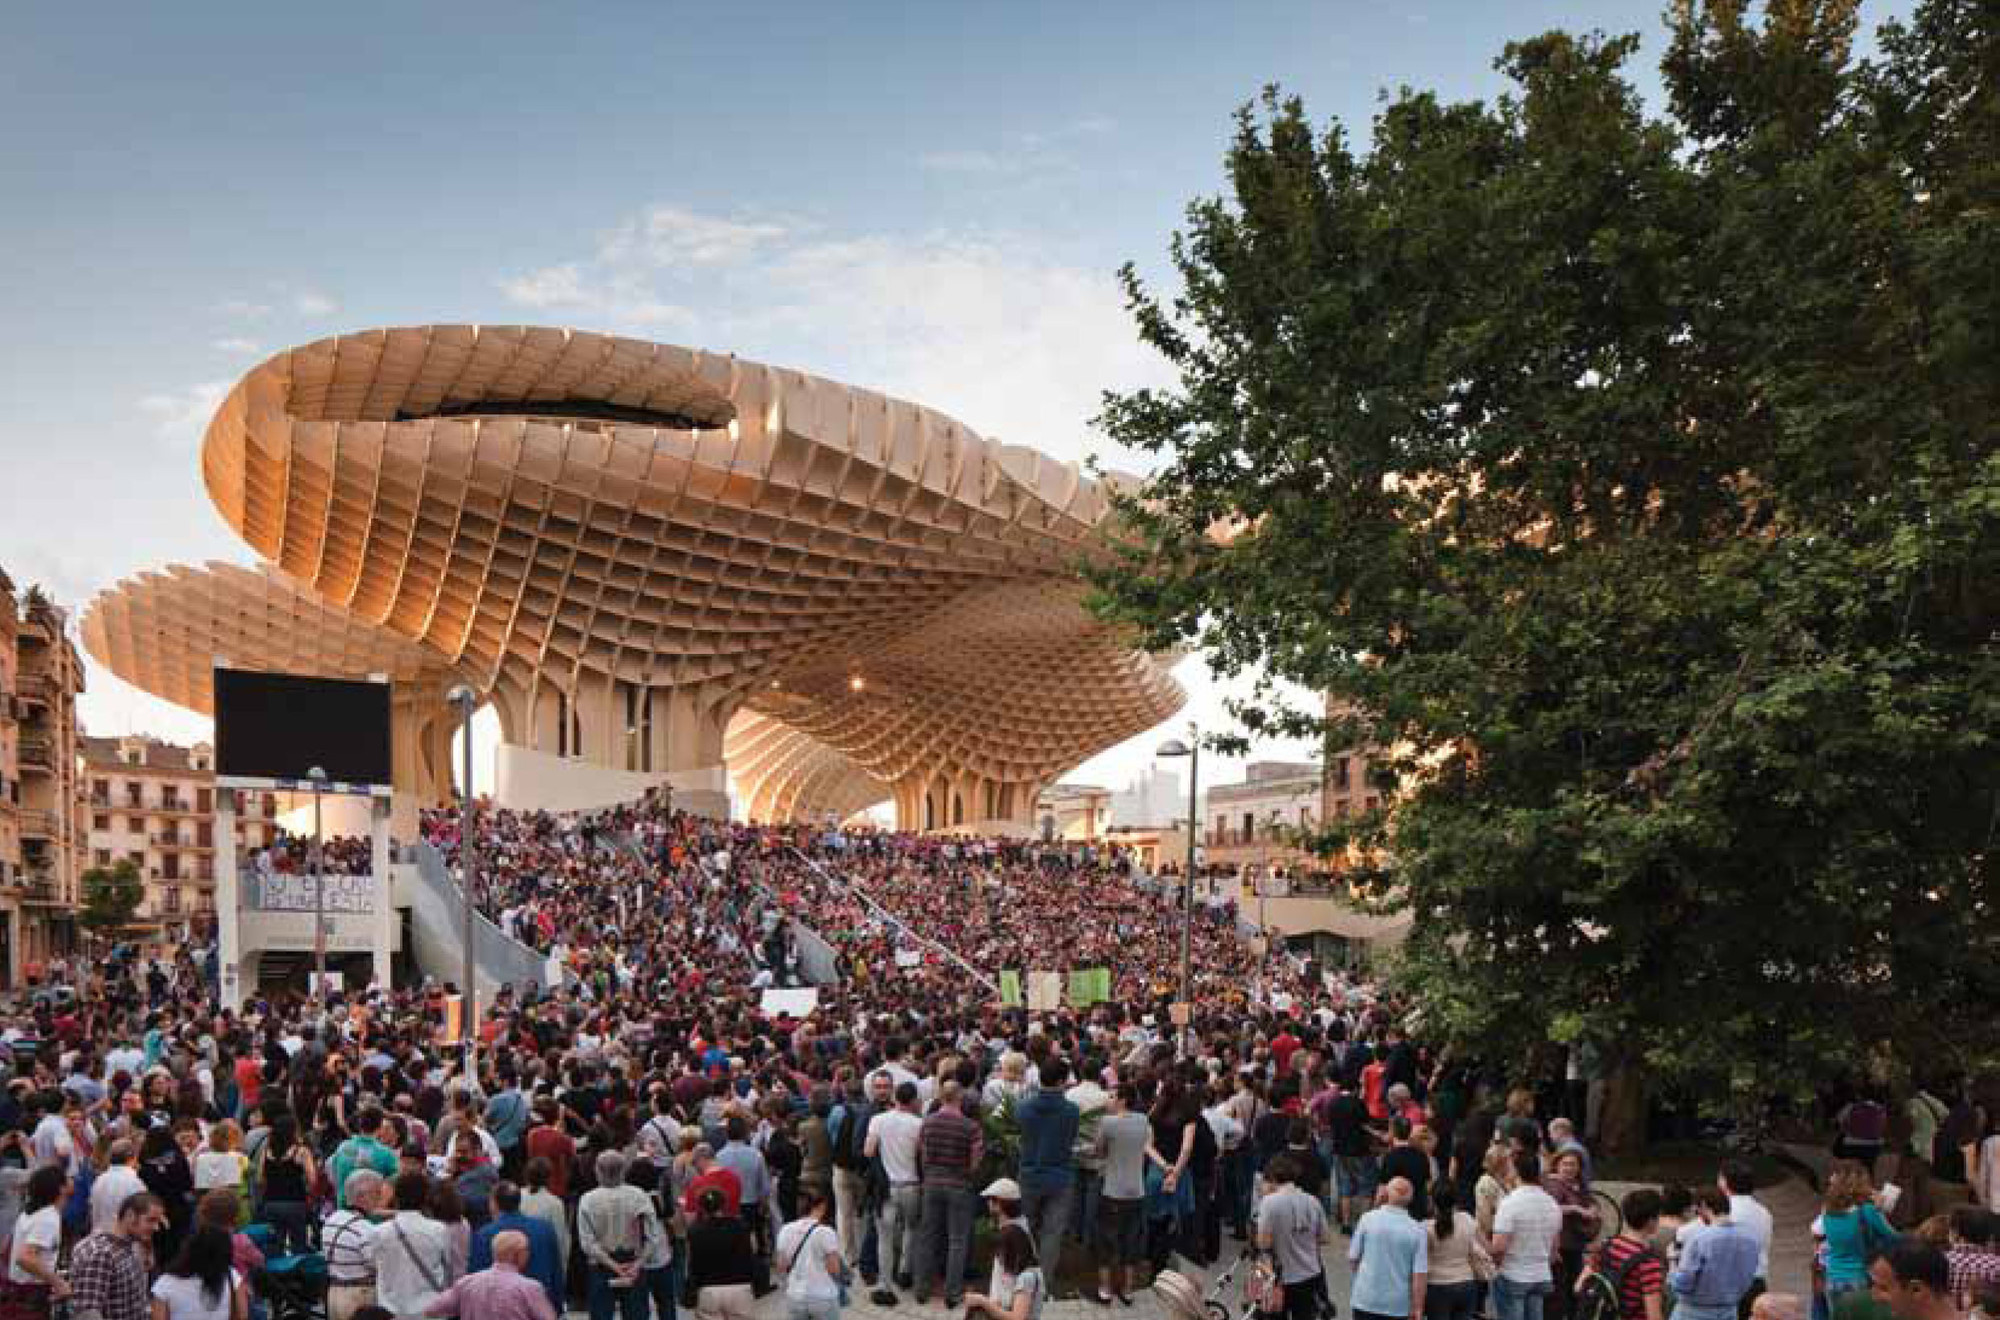 Urban Living Award Winners Announced, Metropol Parasol; J. Mayer H. Architekten. Image Courtesy of Urban Living Awards